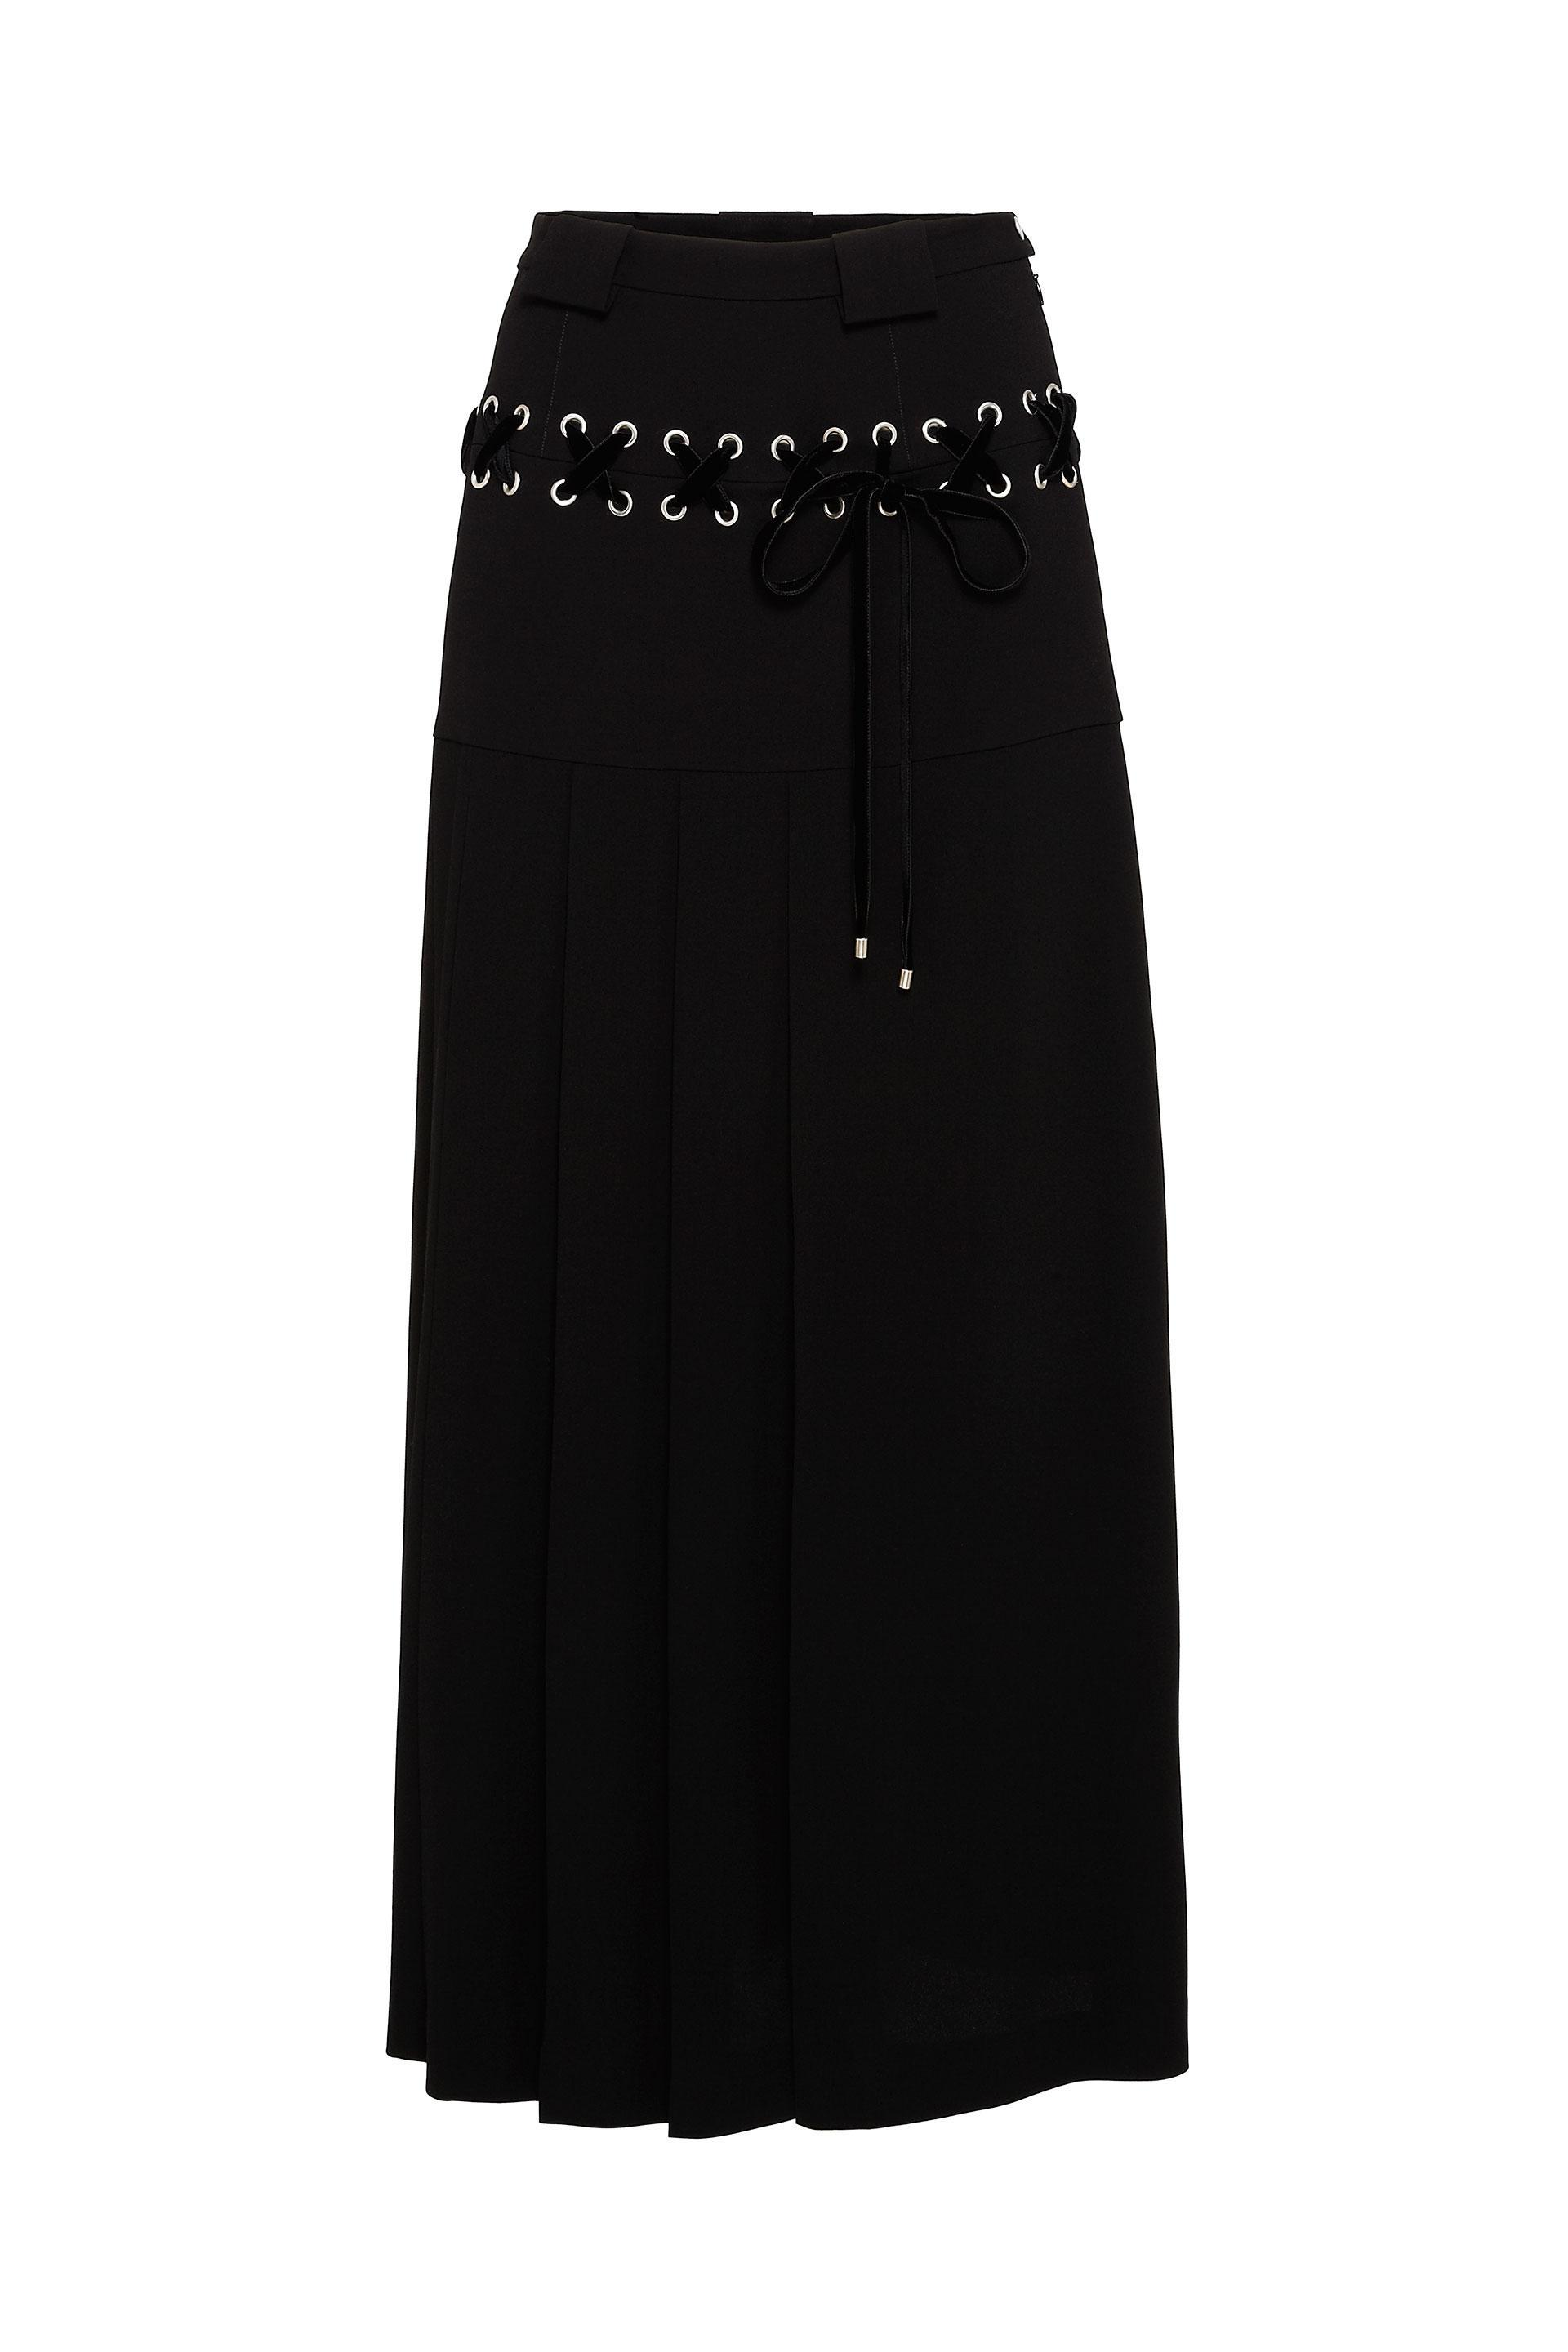 Marc By Marc Jacobs Charlie Double Face CrÊpe Long Seamed Skirt In Black Multi